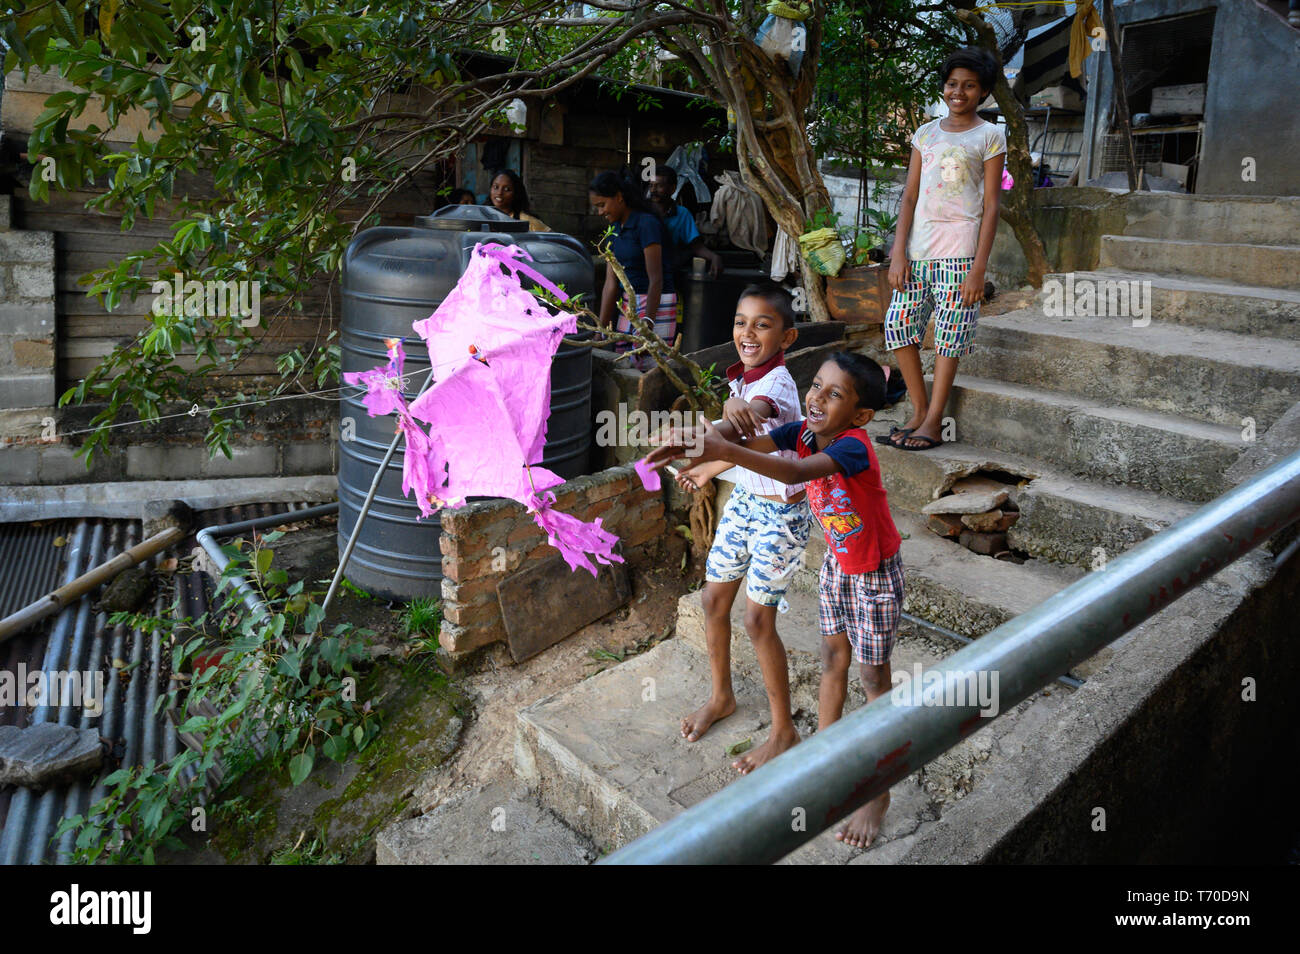 Children flying a kite in a residential area of Kandy, Sri Lanka - Stock Image